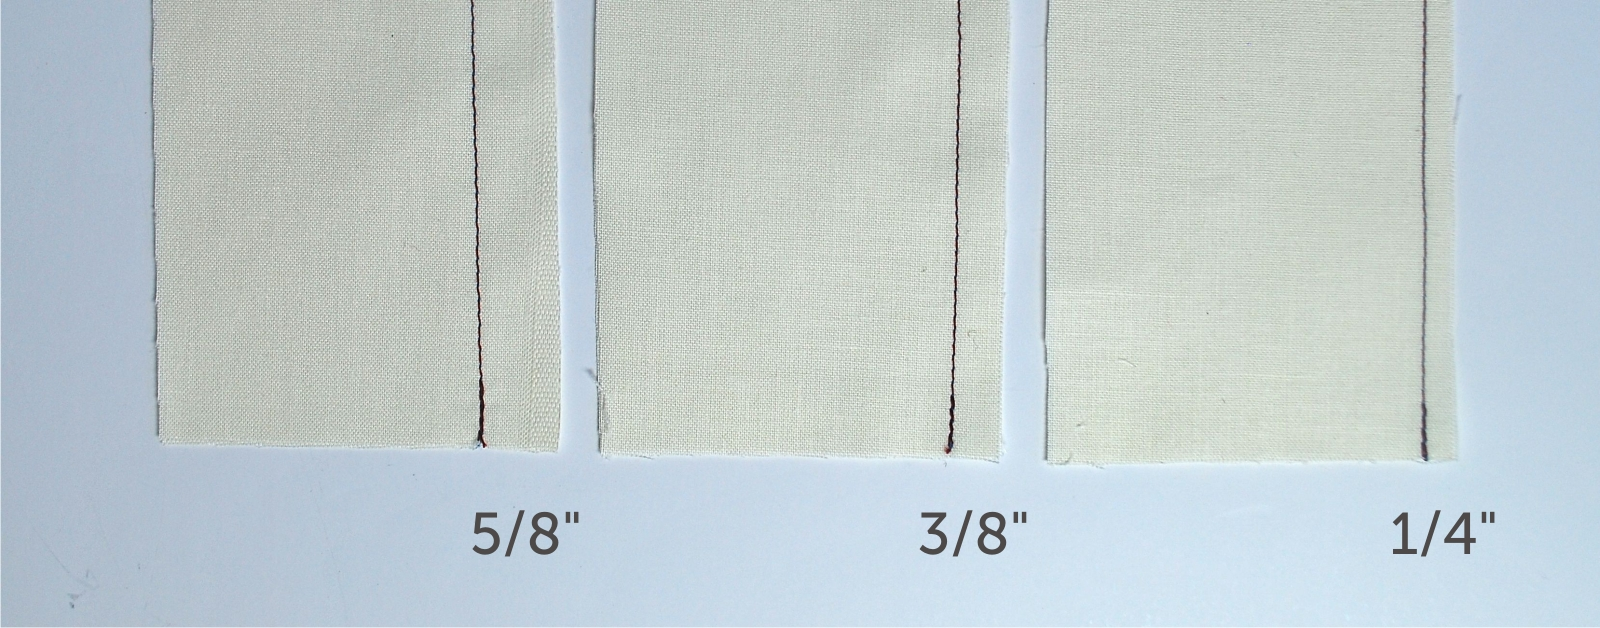 Above is an image showing different seam allowances. 5/8 inch = 1.6cm, 3/8 inch = 1 cm, and 1/4 inch = 0.6cm